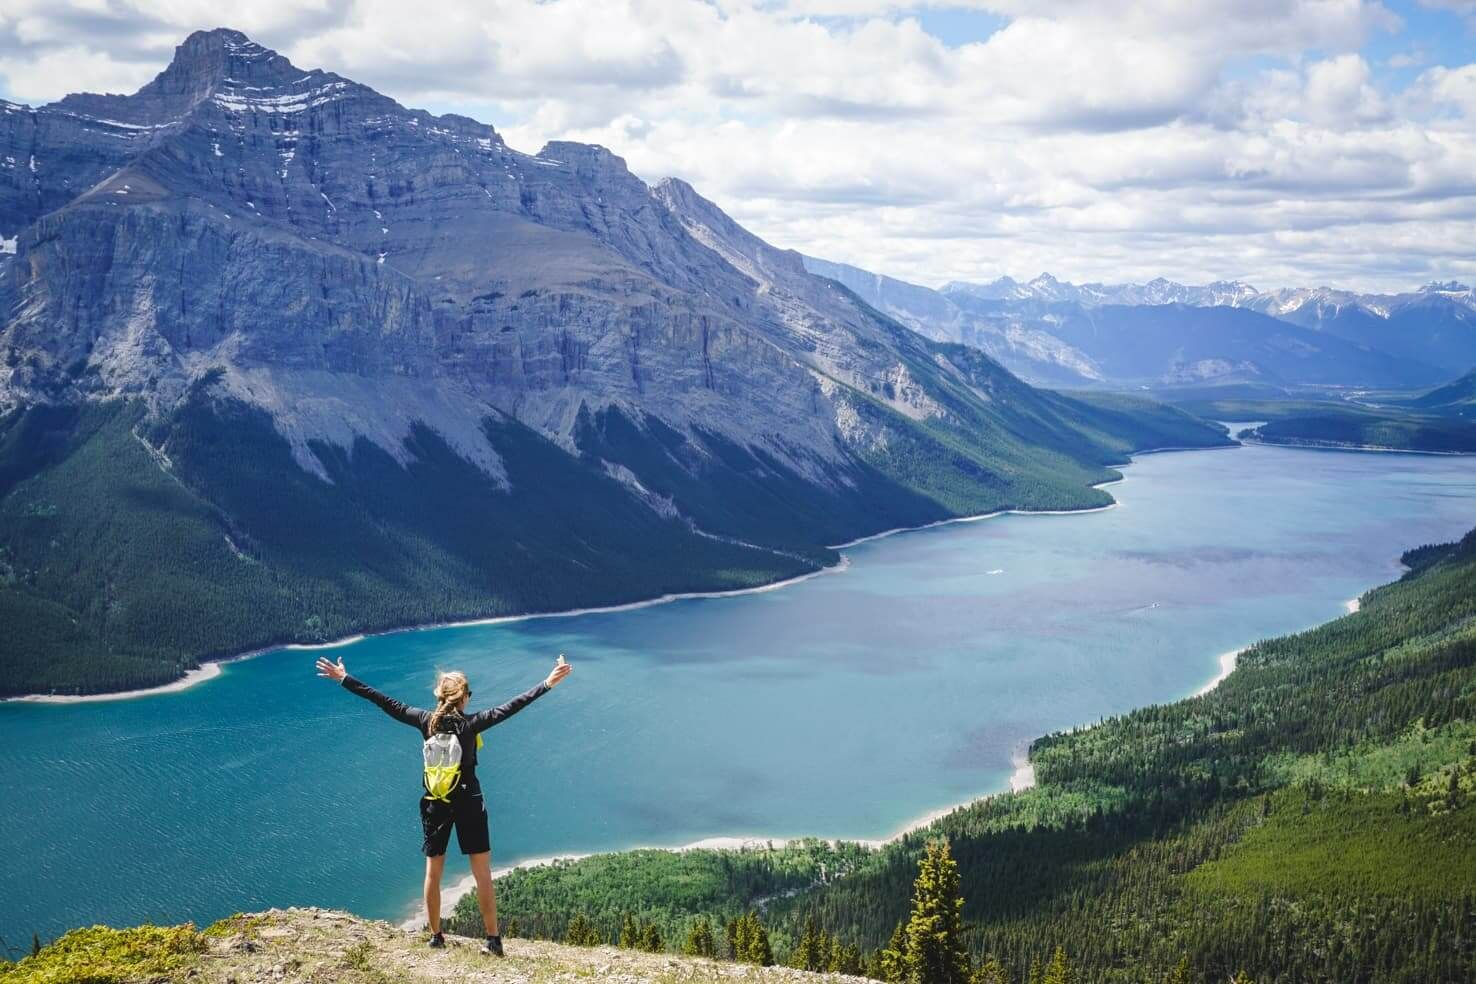 Banff Itinerary For 3 Days With Secret Local Tips In 2020 Banff National Park Best Hikes Banff National Park Canada